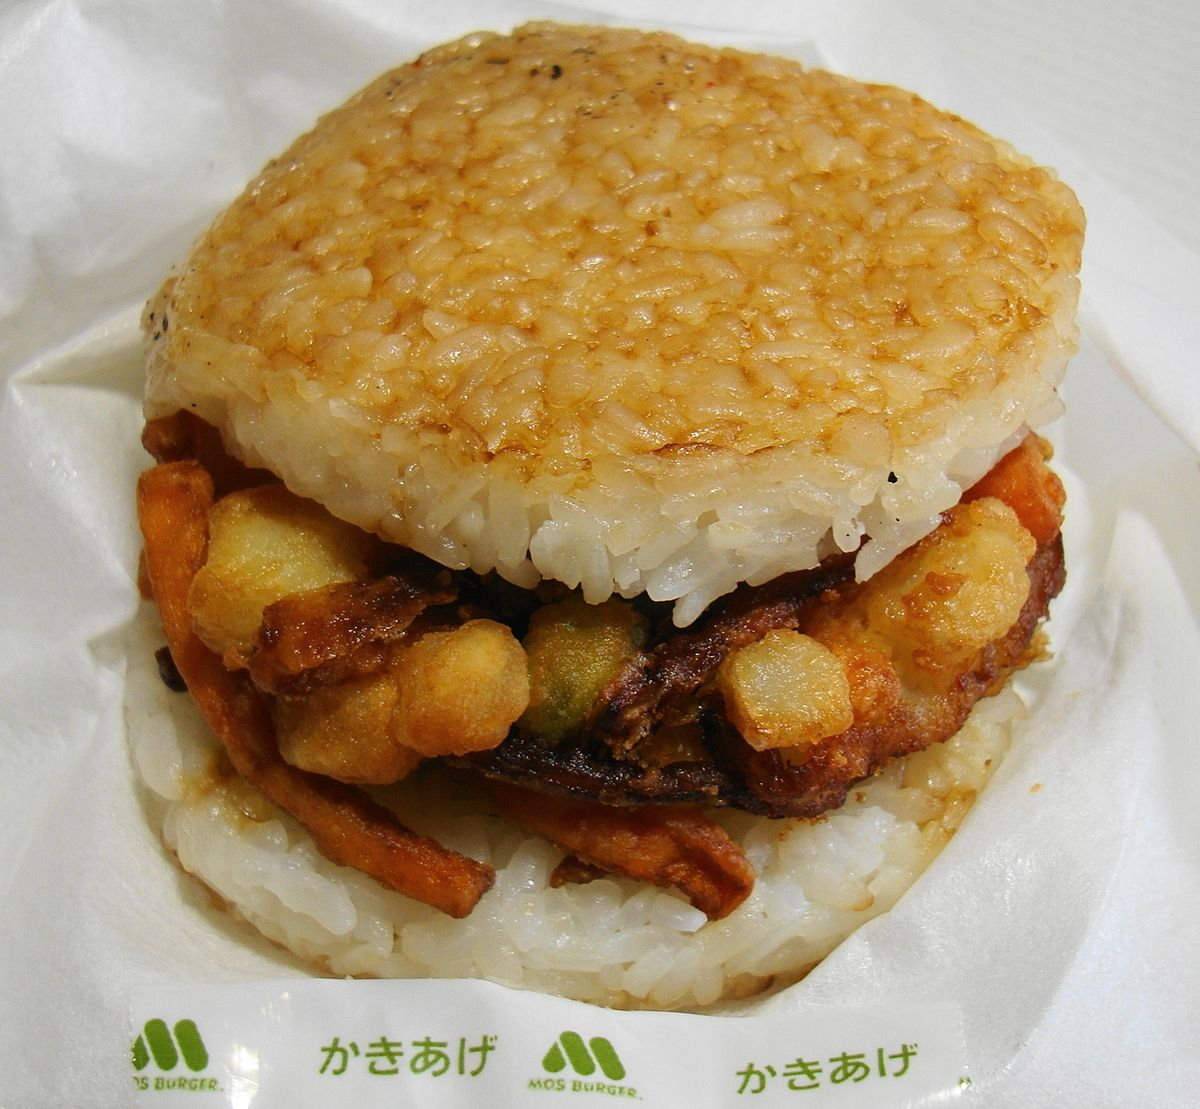 Asian Fast Food Chain Crossword Clue